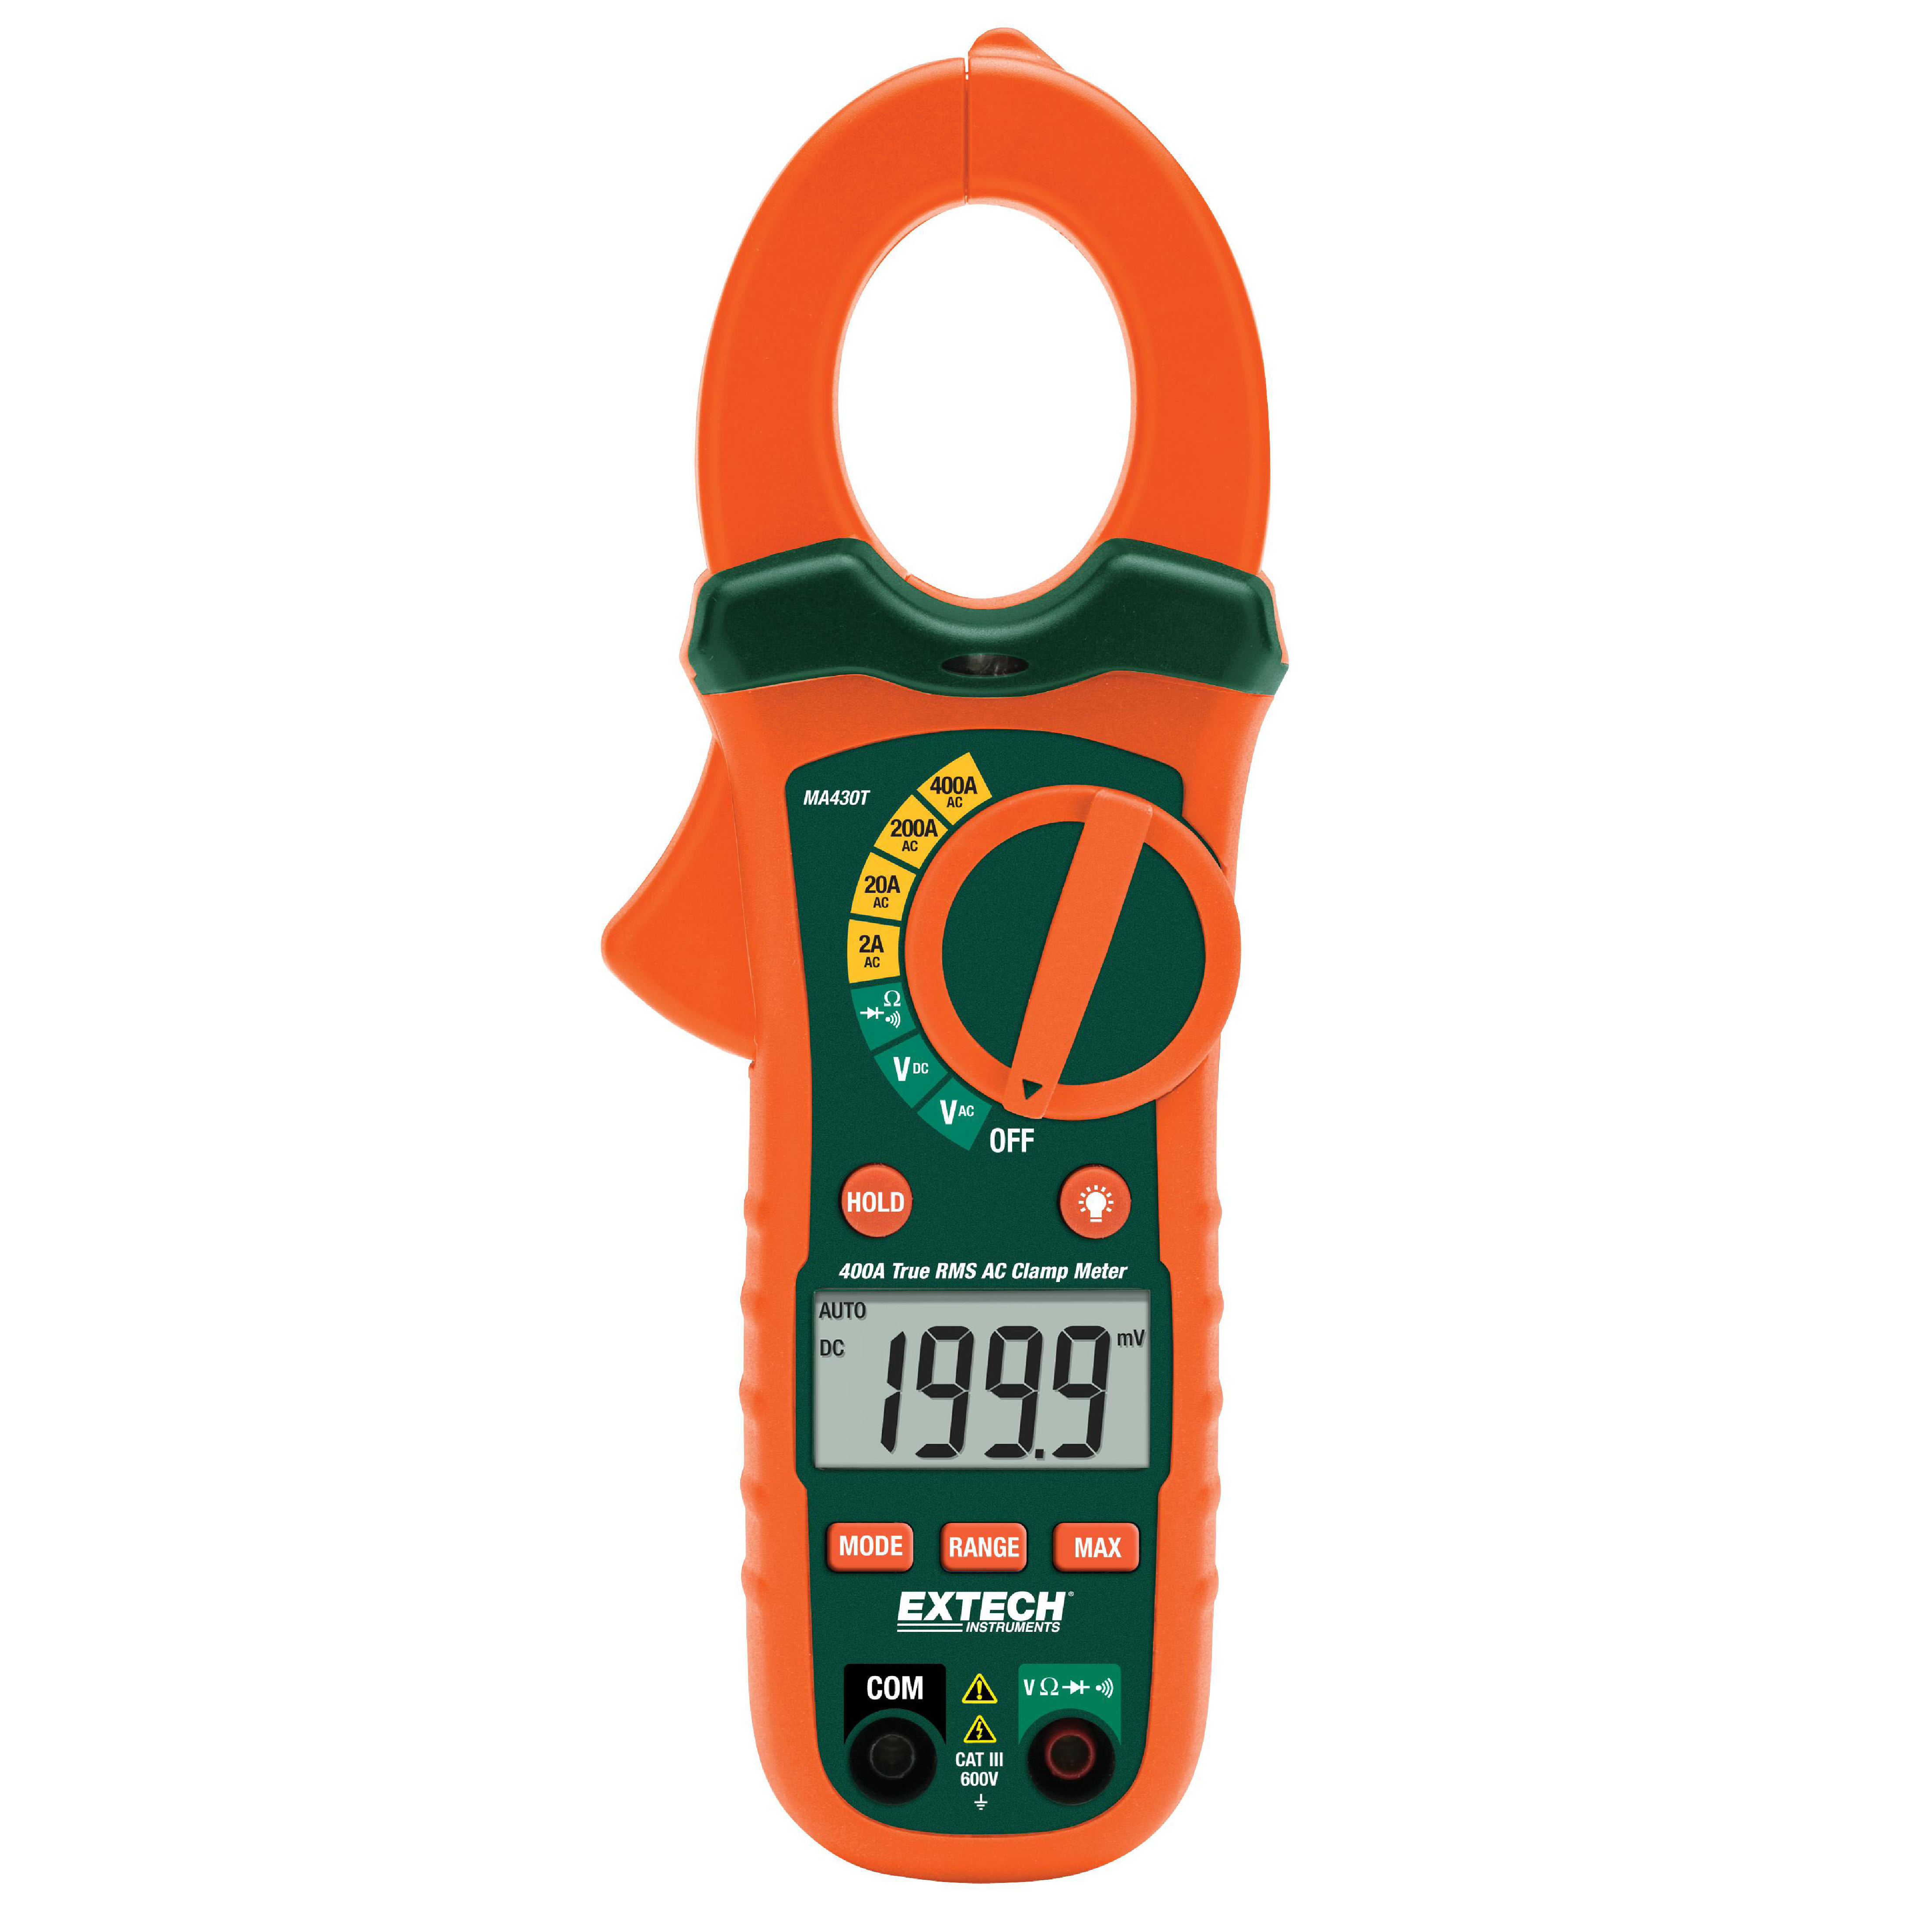 EXTECH MA430T - 400A True RMS AC Clamp Meter + NCV